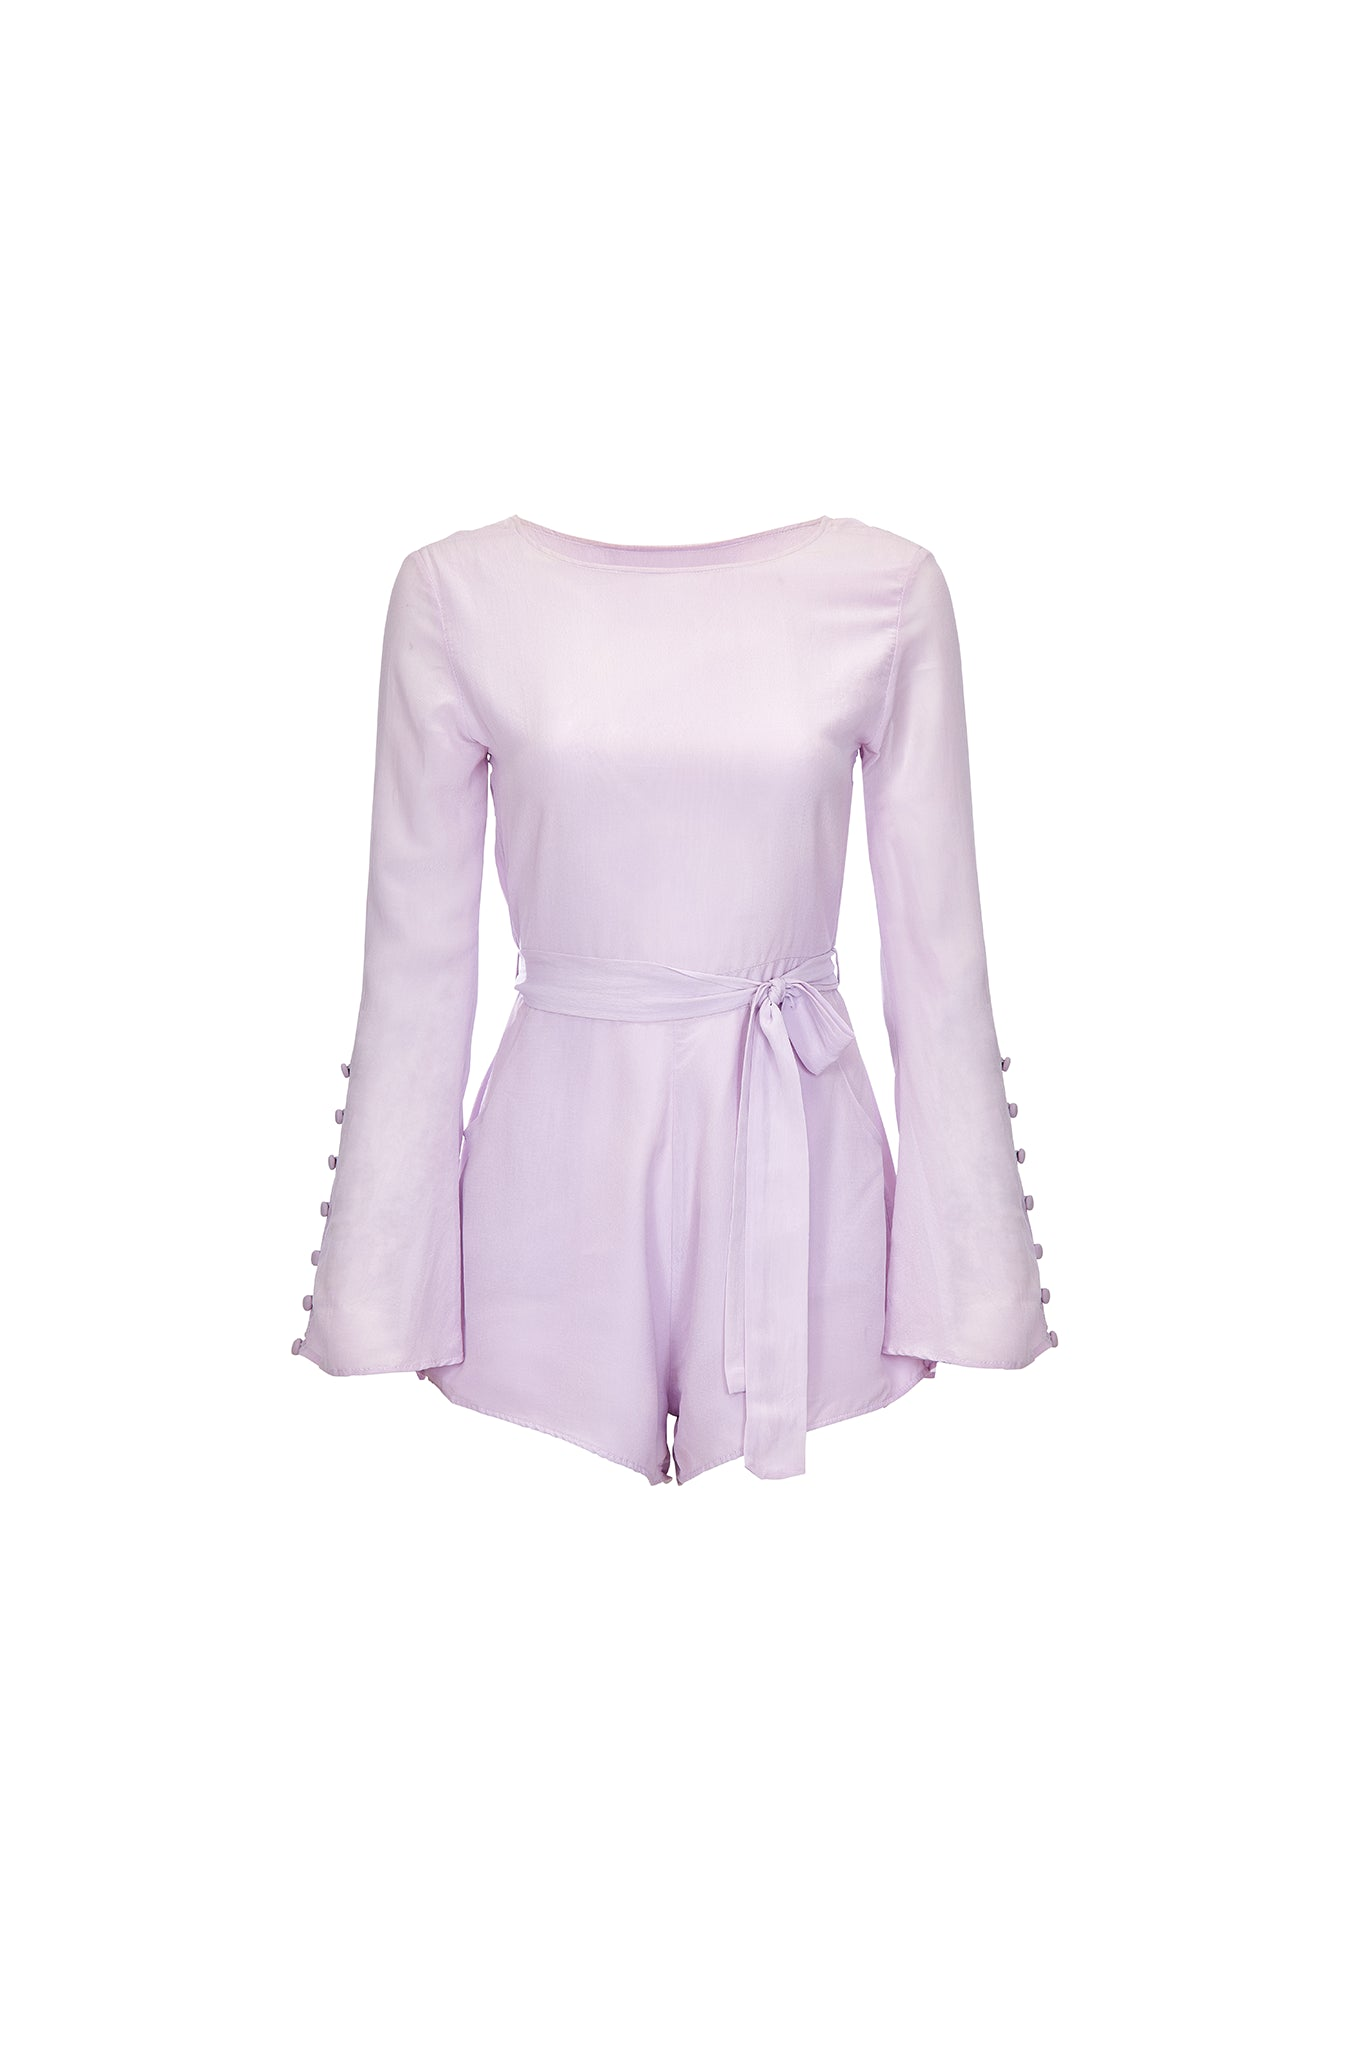 Belle long-sleeve romper in lavender - product shot front